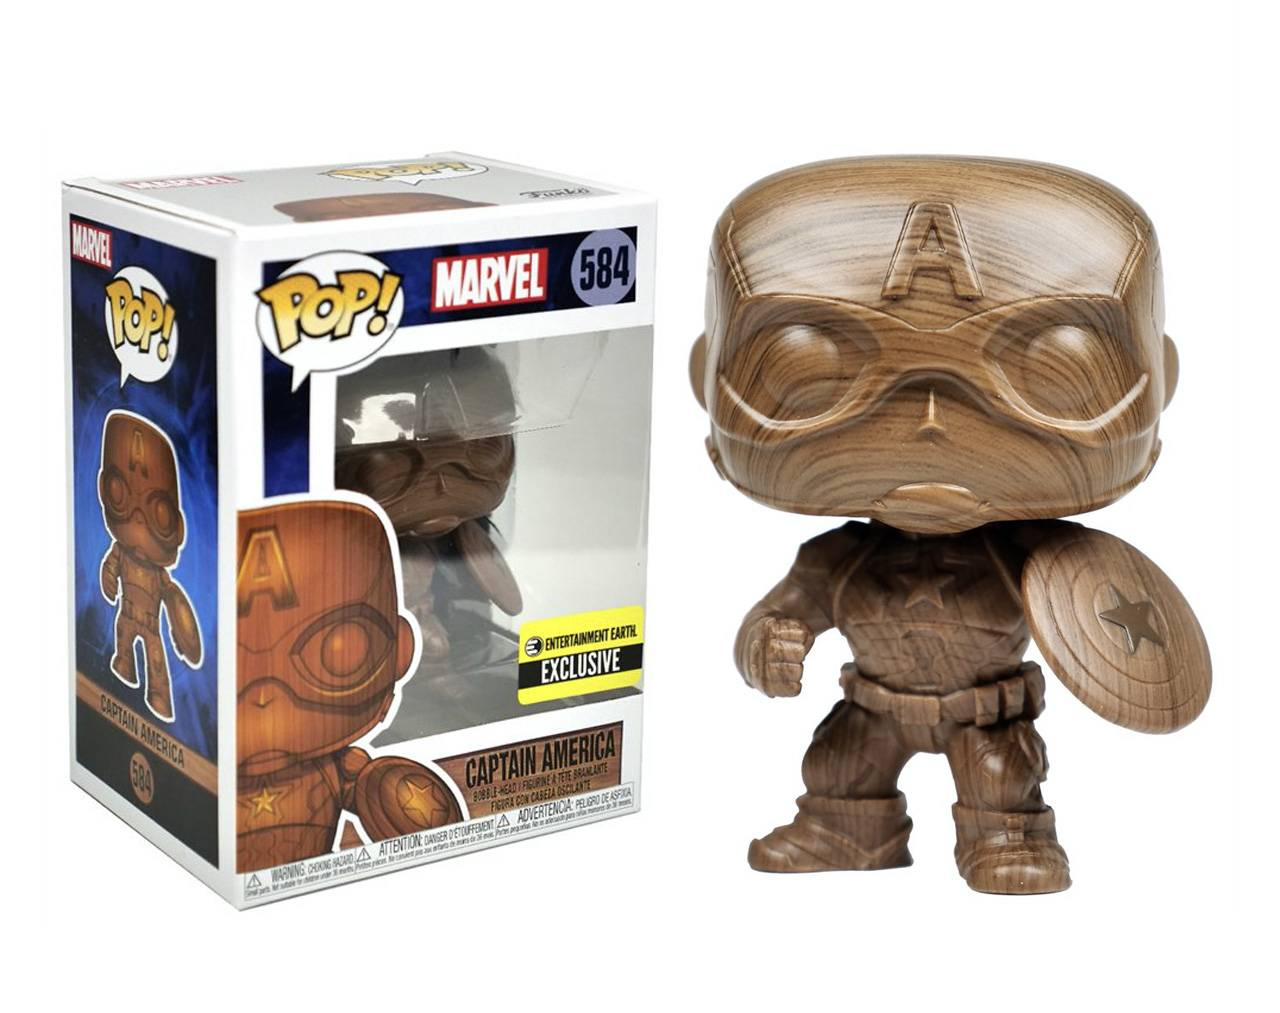 Captain America (Wood Deco) Pop! Vinyl